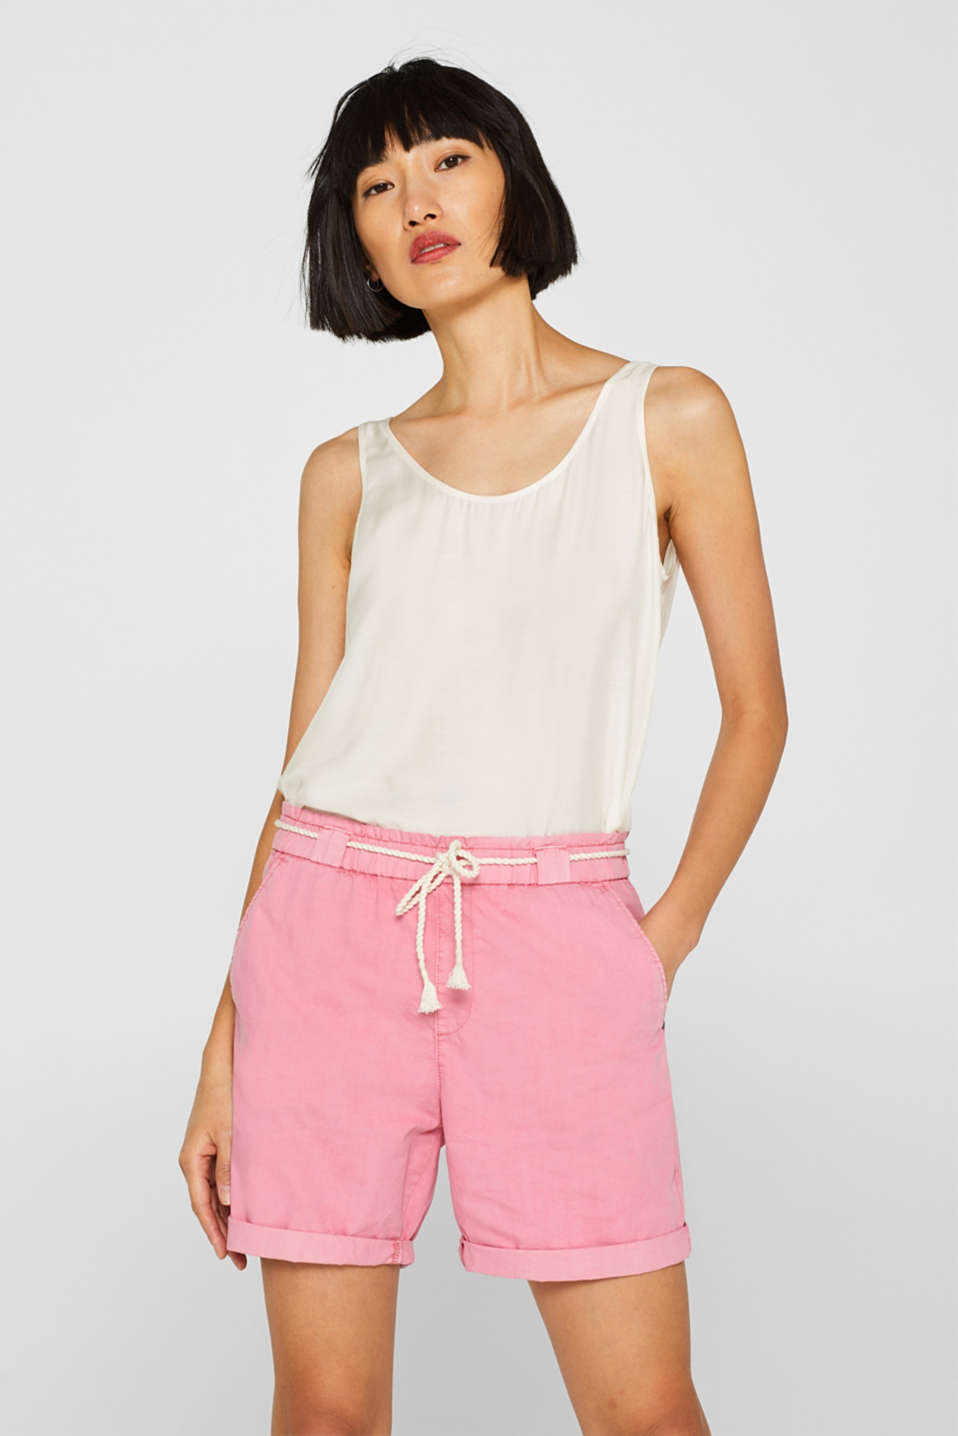 Esprit - 100% cotton shorts with a cord belt